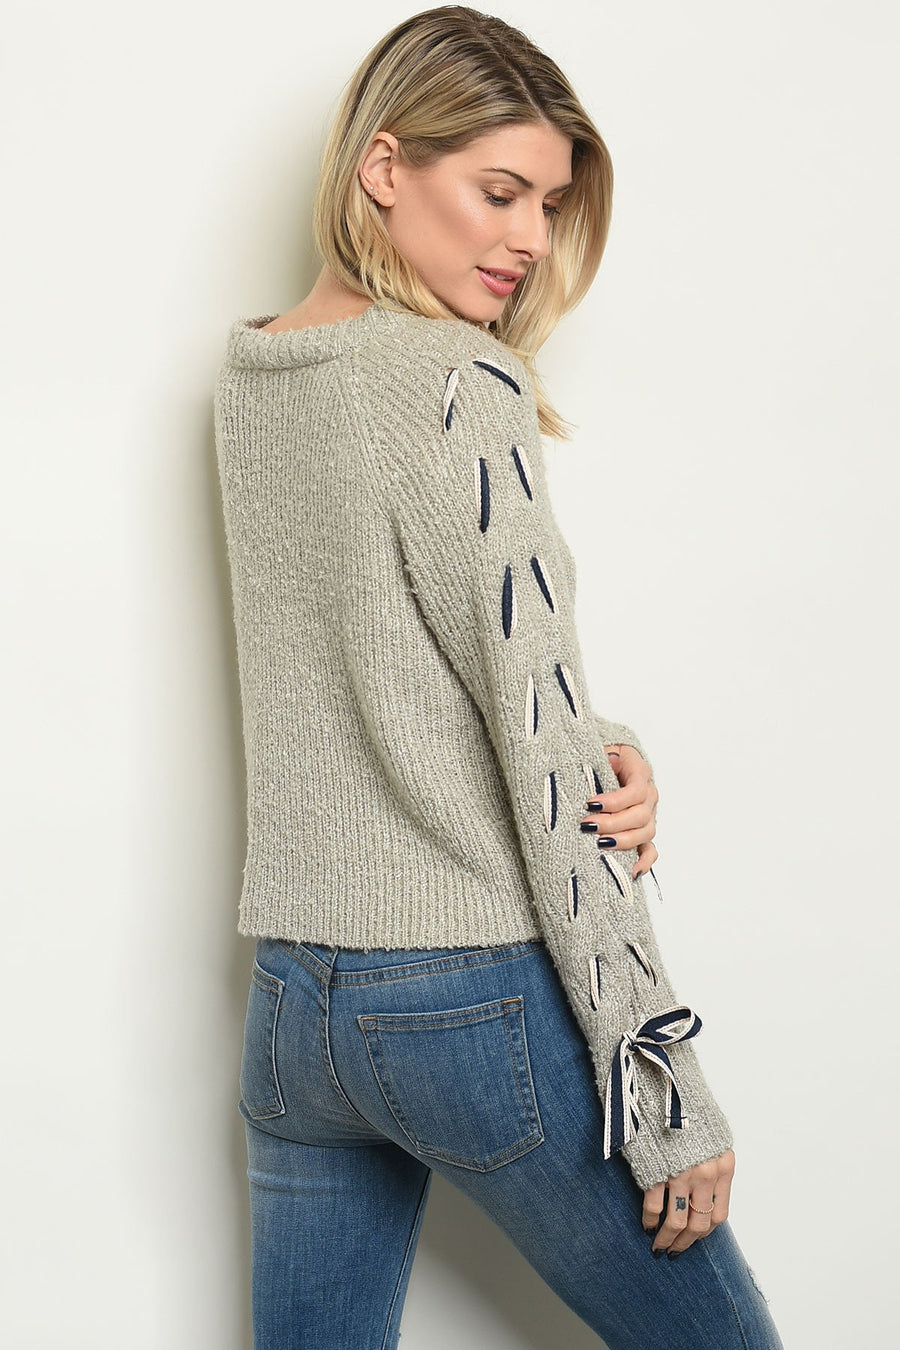 Womens Sweater - TrendyLyfeUSA